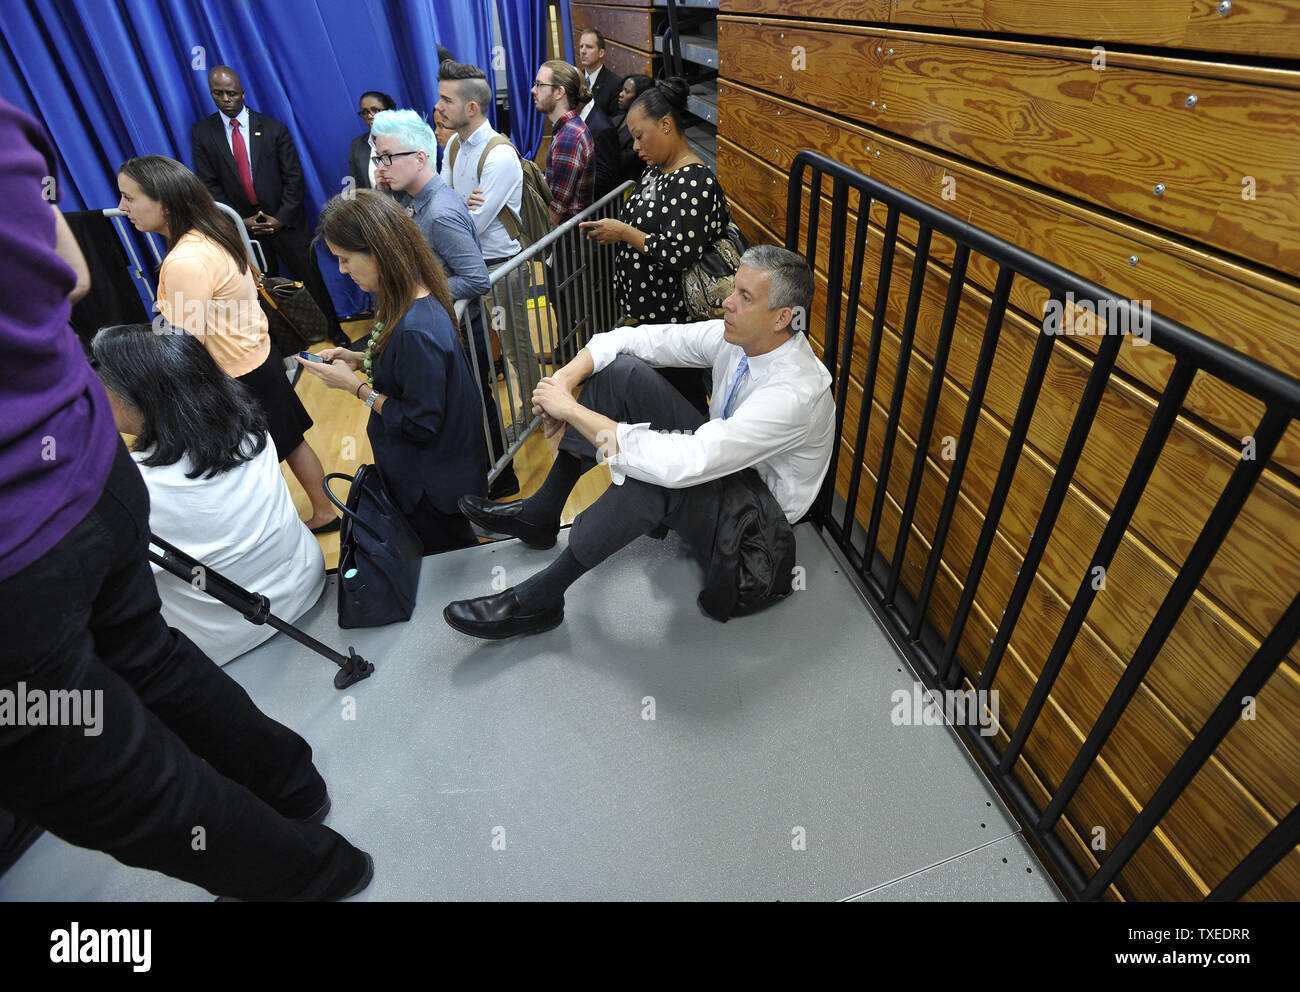 Education Secretary Arne Duncan takes off his jacket and sits on a press riser as he listens to First Lady Michelle Obama as they bring education initiatives to Booker T. Washington high school during a Reach Higher rally with students on September 8, in Atlanta. UPI/David Tulis - Stock Image